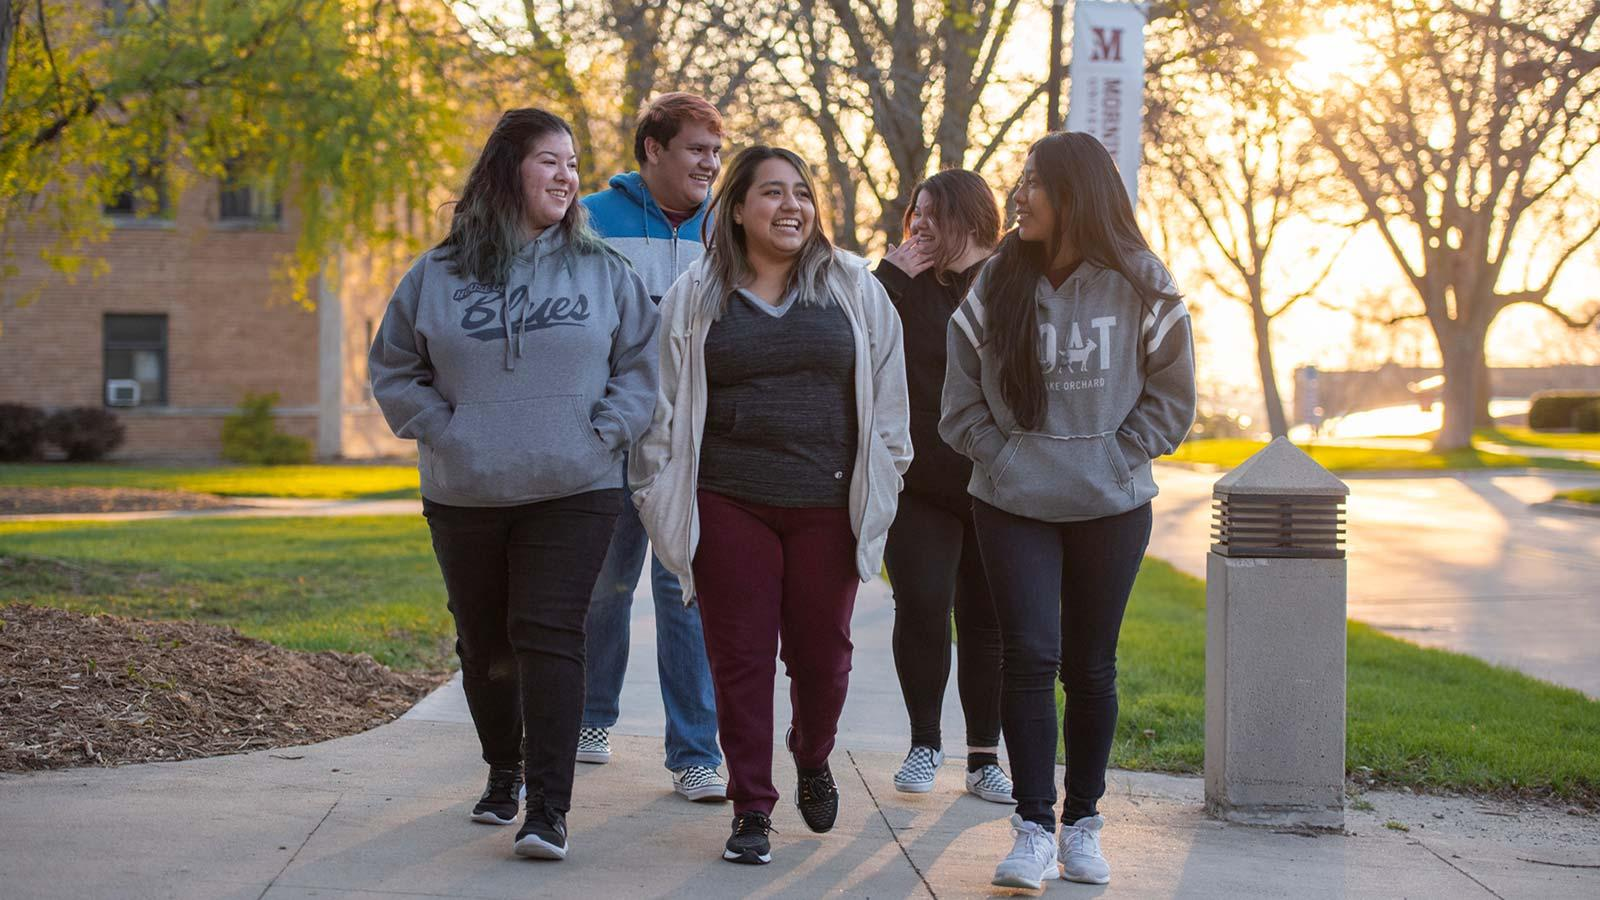 Morningside students walking on campus at sunset